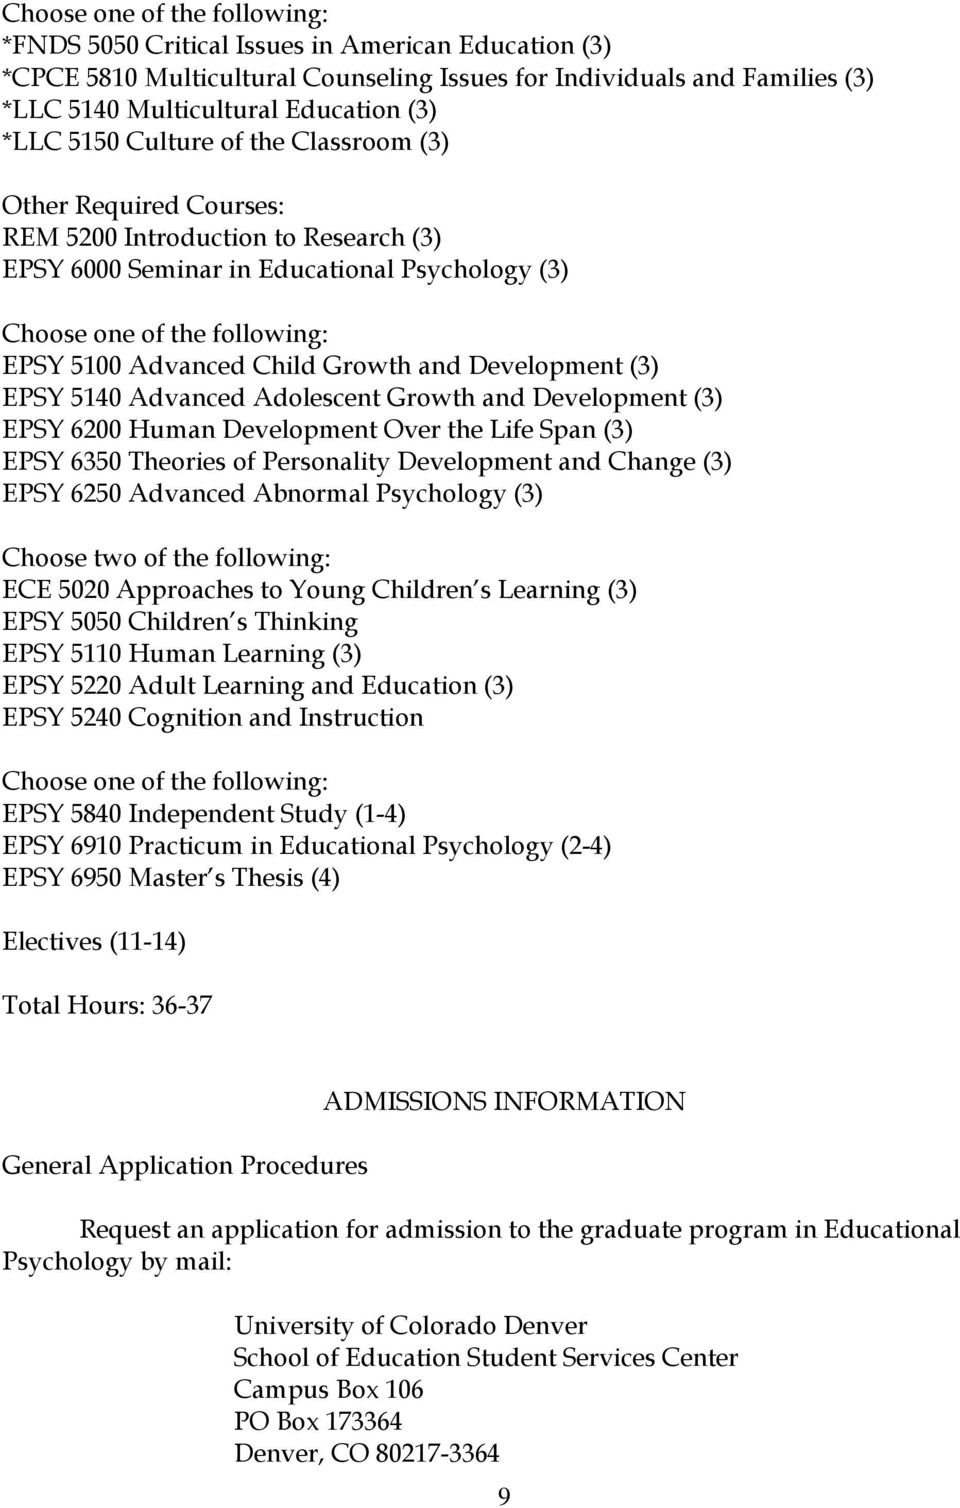 Adolescent Growth and Development (3) EPSY 6200 Human Development Over the Life Span (3) EPSY 6350 Theories of Personality Development and Change (3) EPSY 6250 Advanced Abnormal Psychology (3) Choose